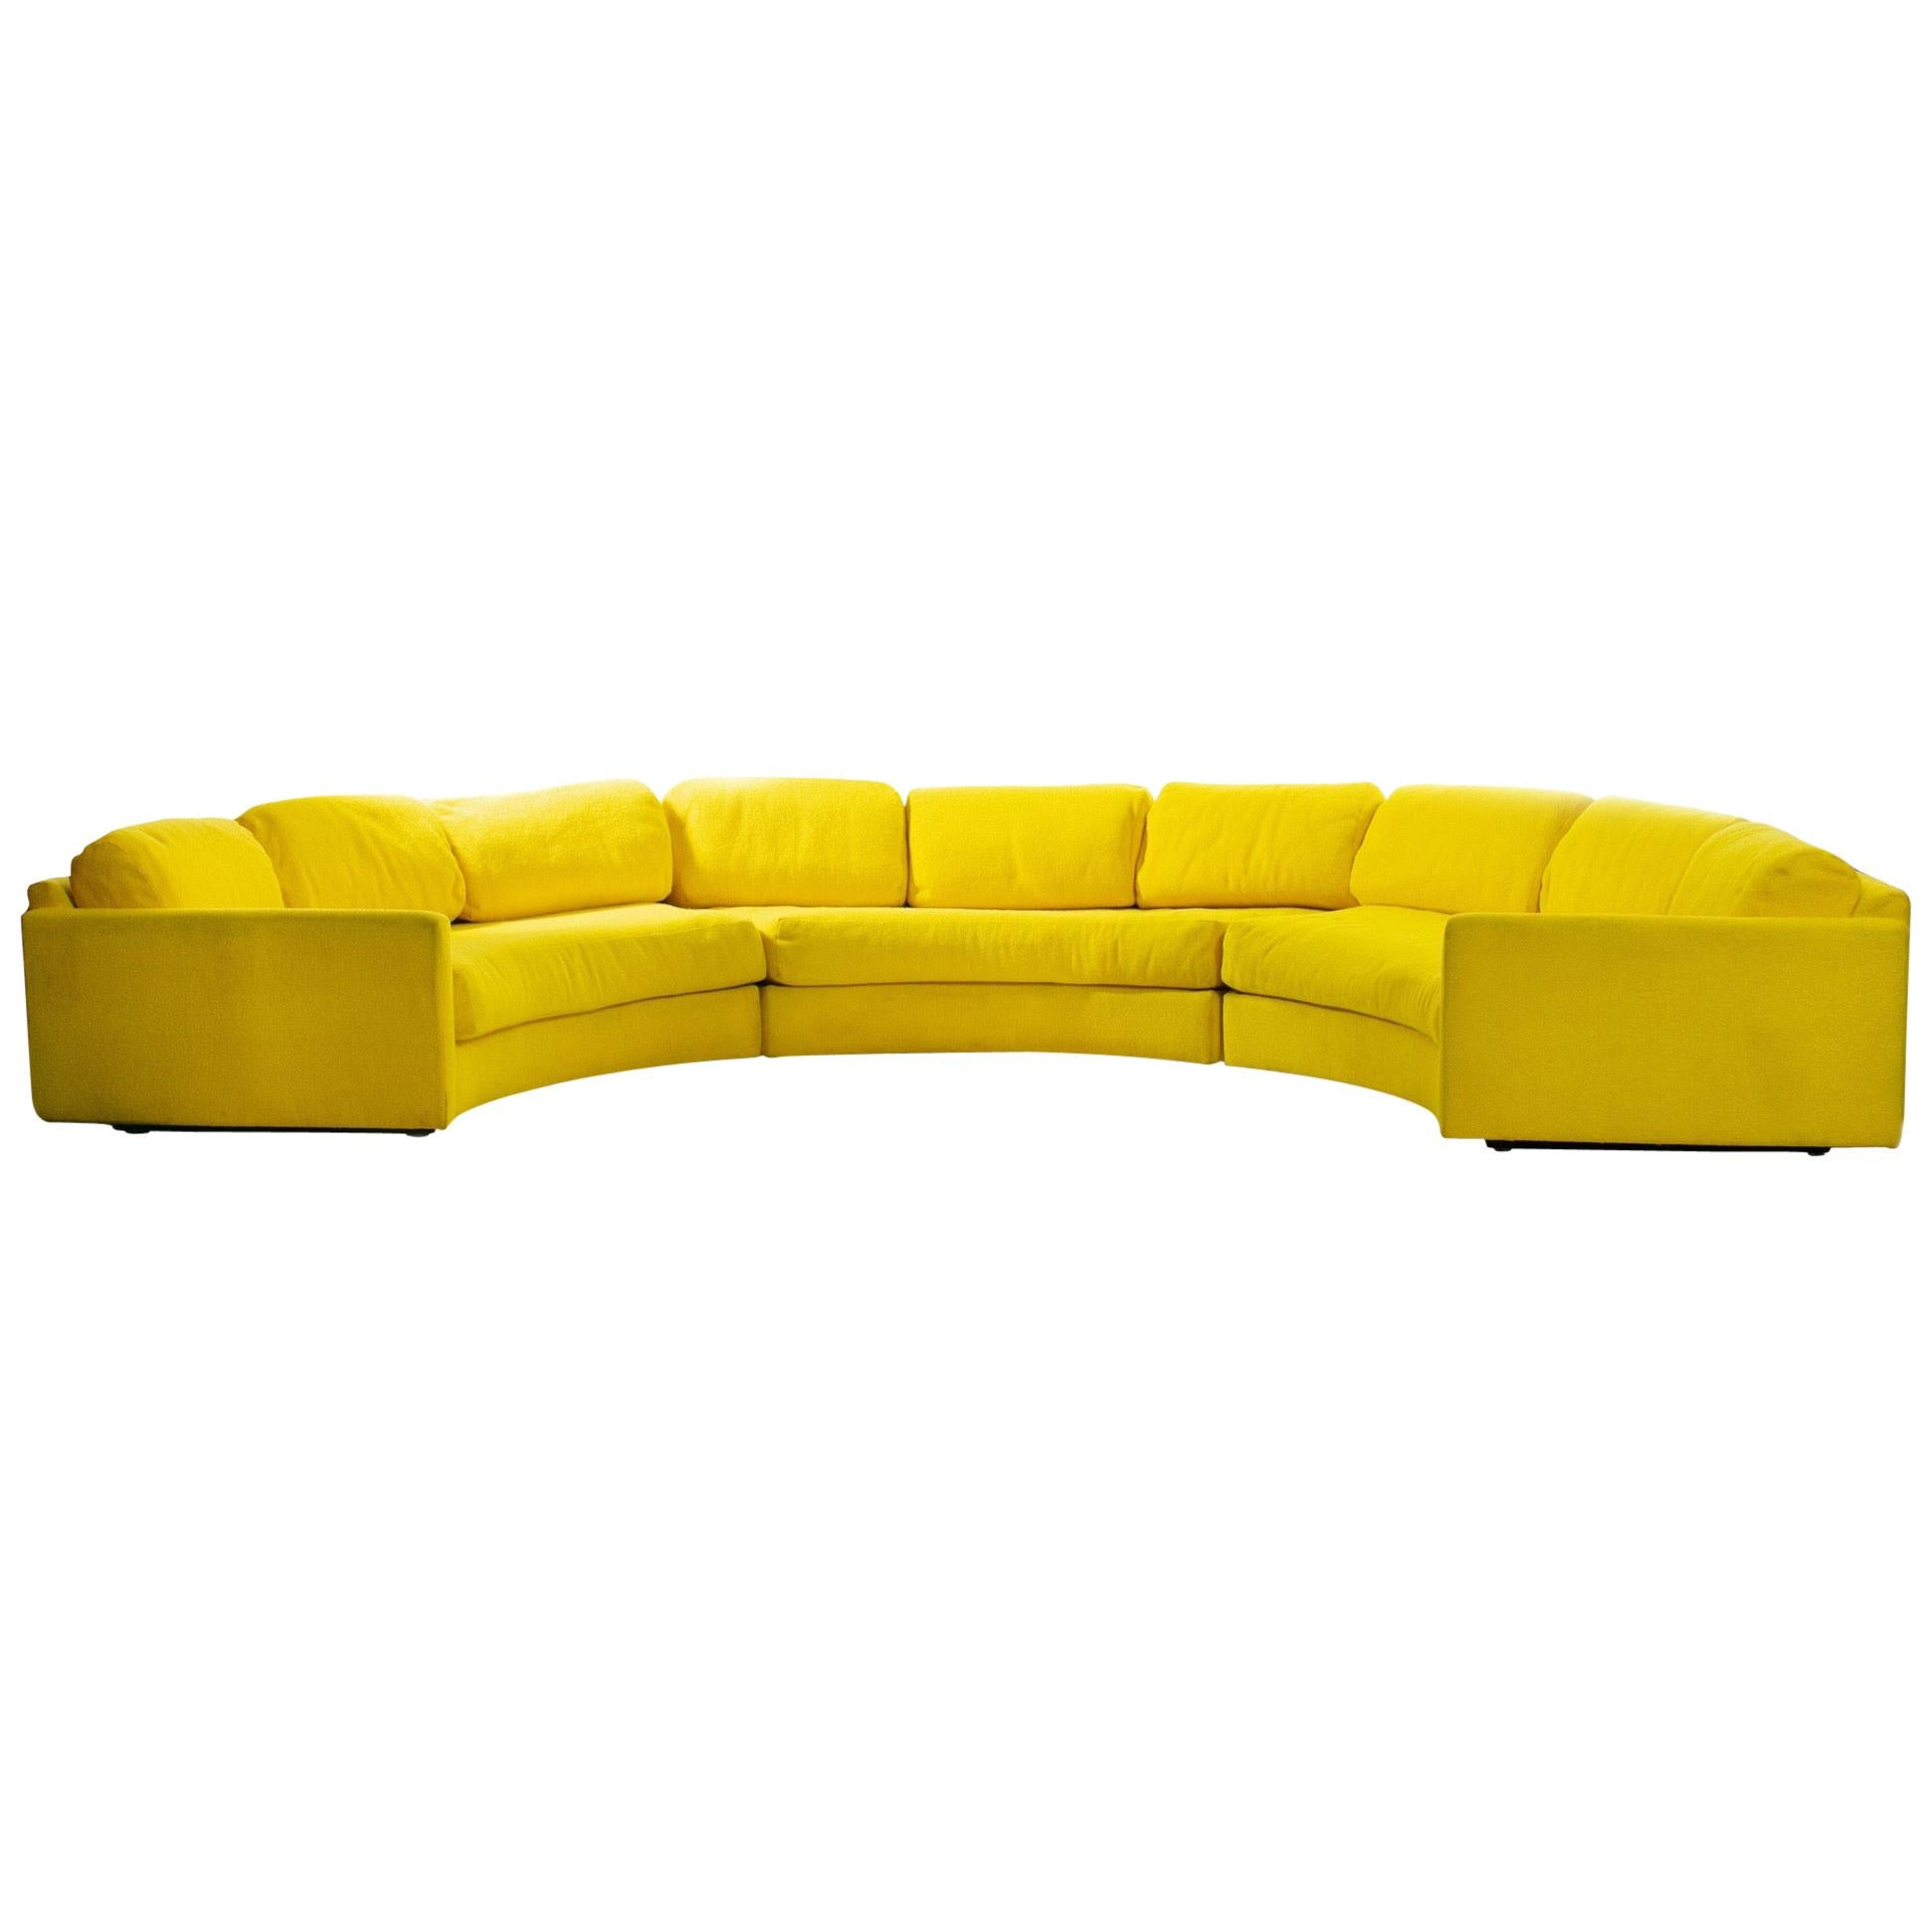 Adrian Pearsall Pit Style Yellow Semi-Circular Sofa 3 Piece Sectional